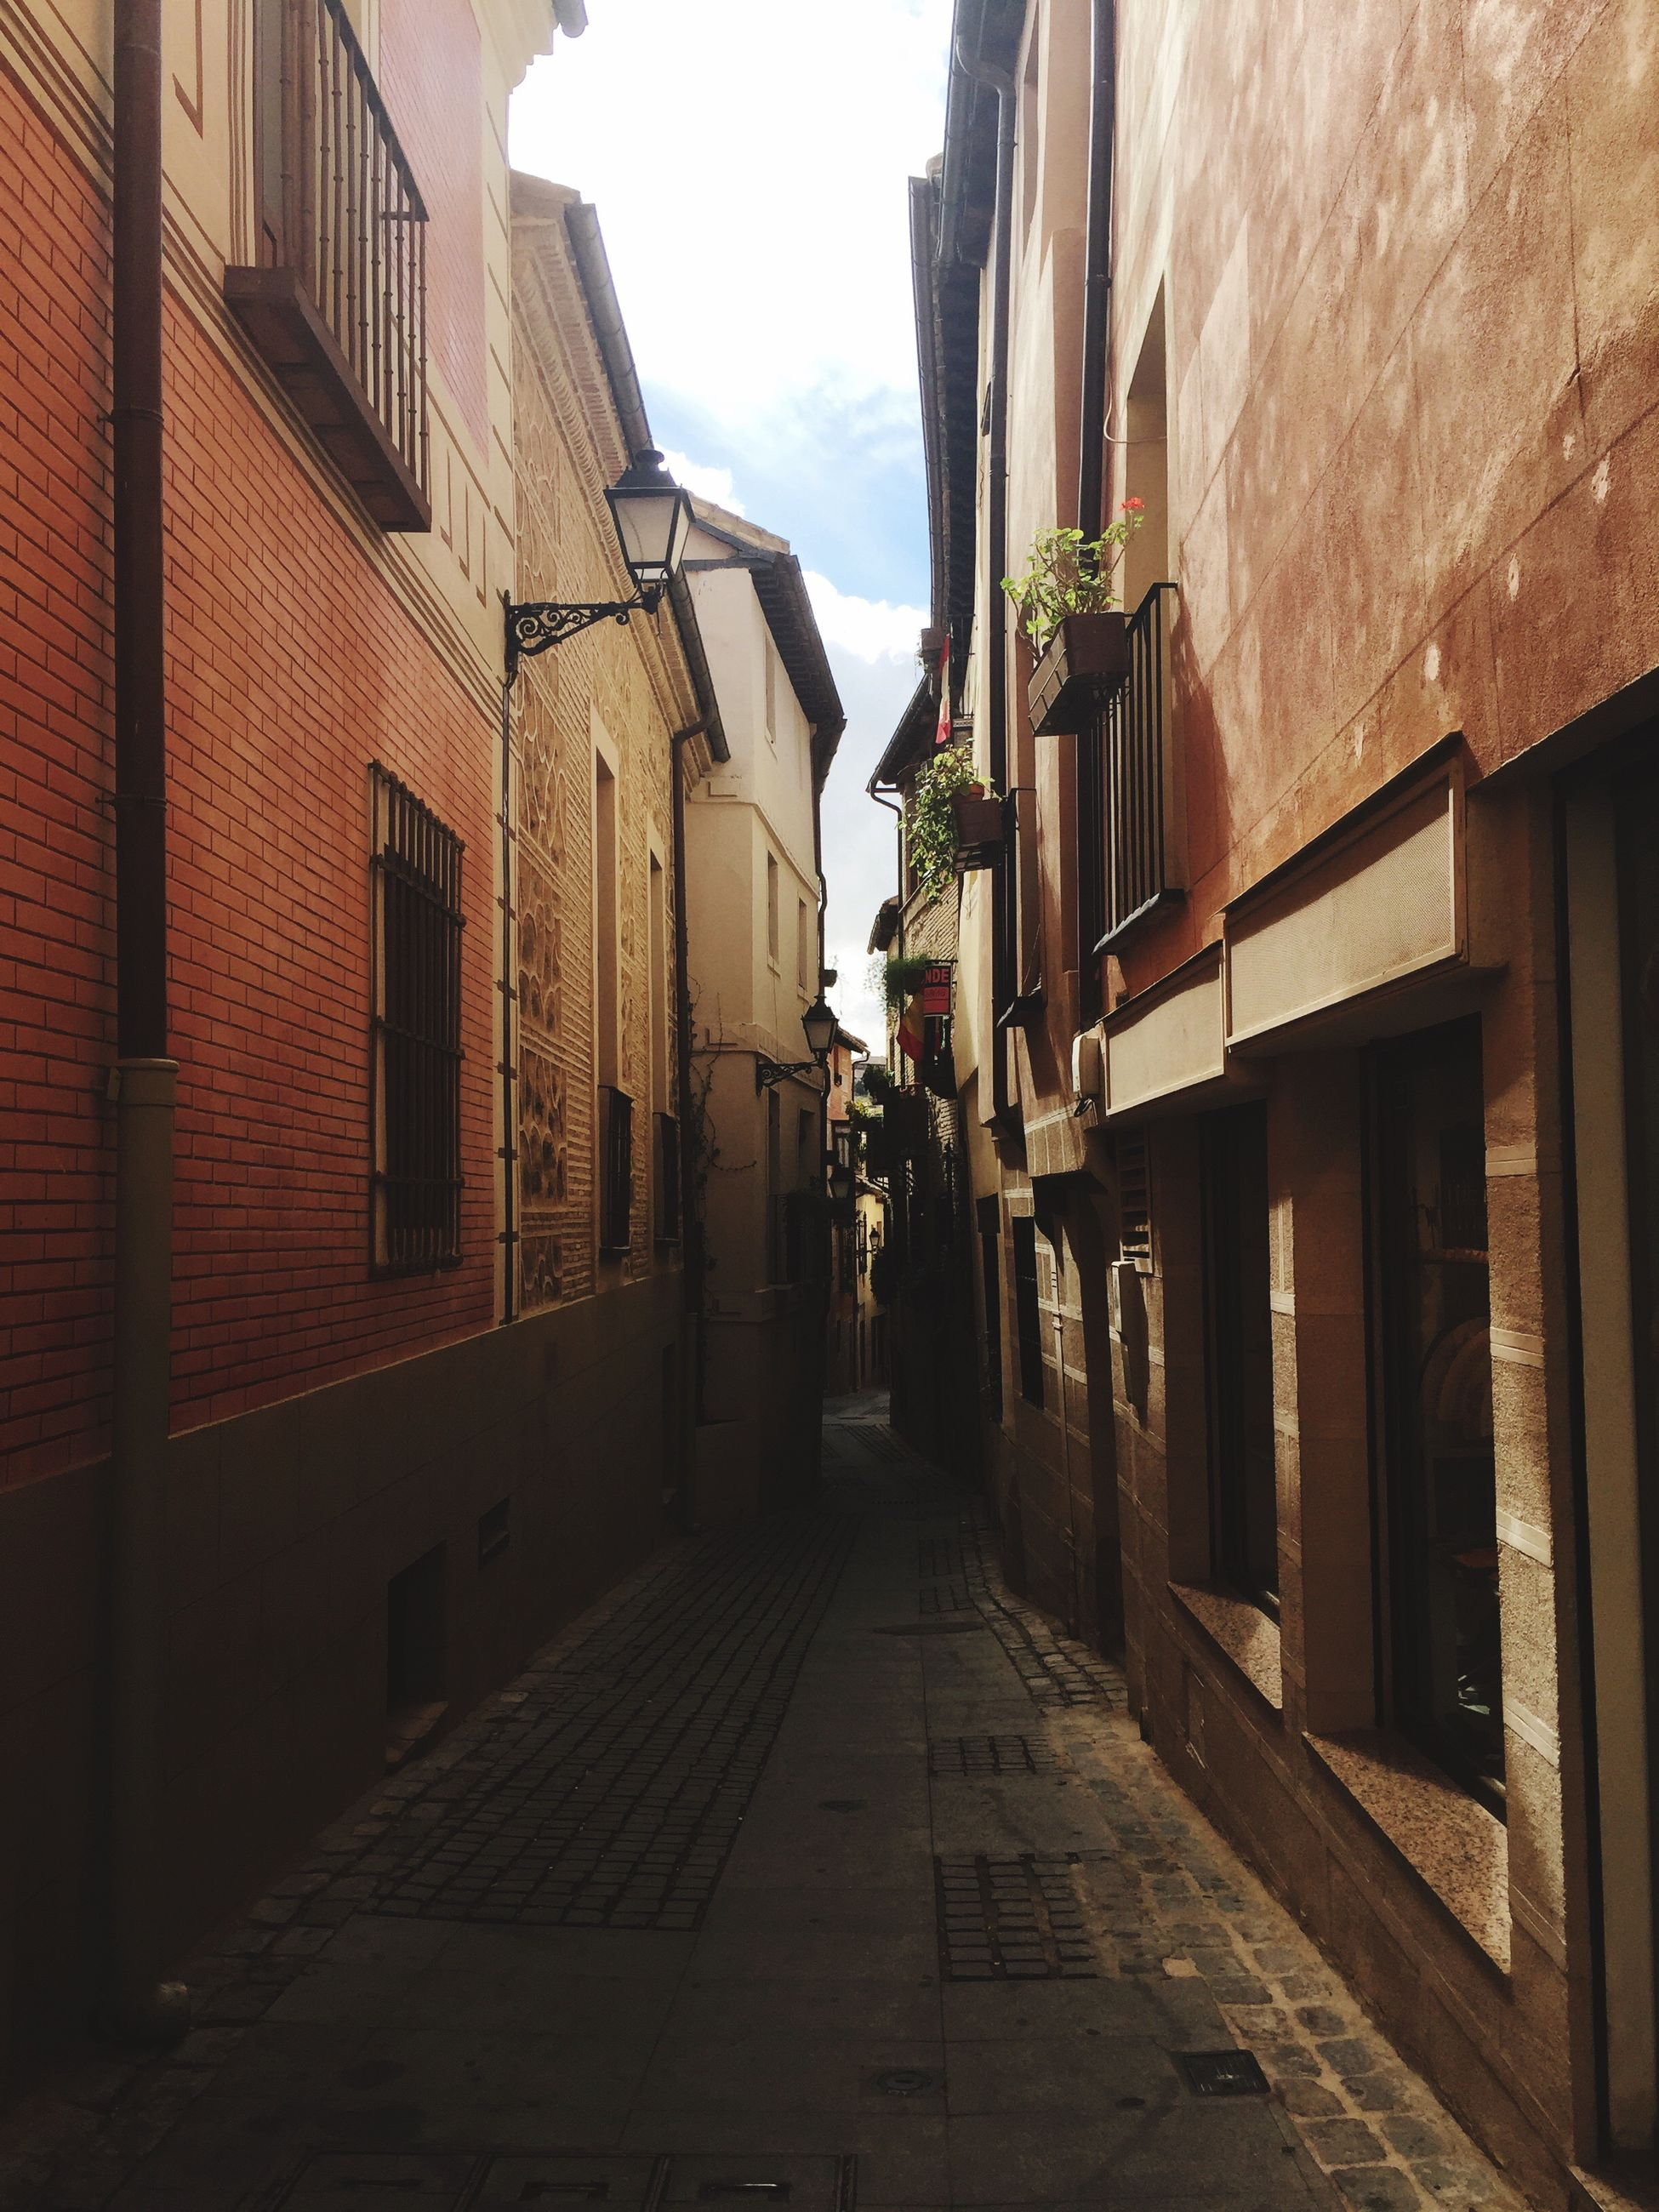 architecture, building exterior, built structure, the way forward, residential building, residential structure, street, building, alley, narrow, diminishing perspective, city, sky, house, vanishing point, transportation, outdoors, cobblestone, day, town